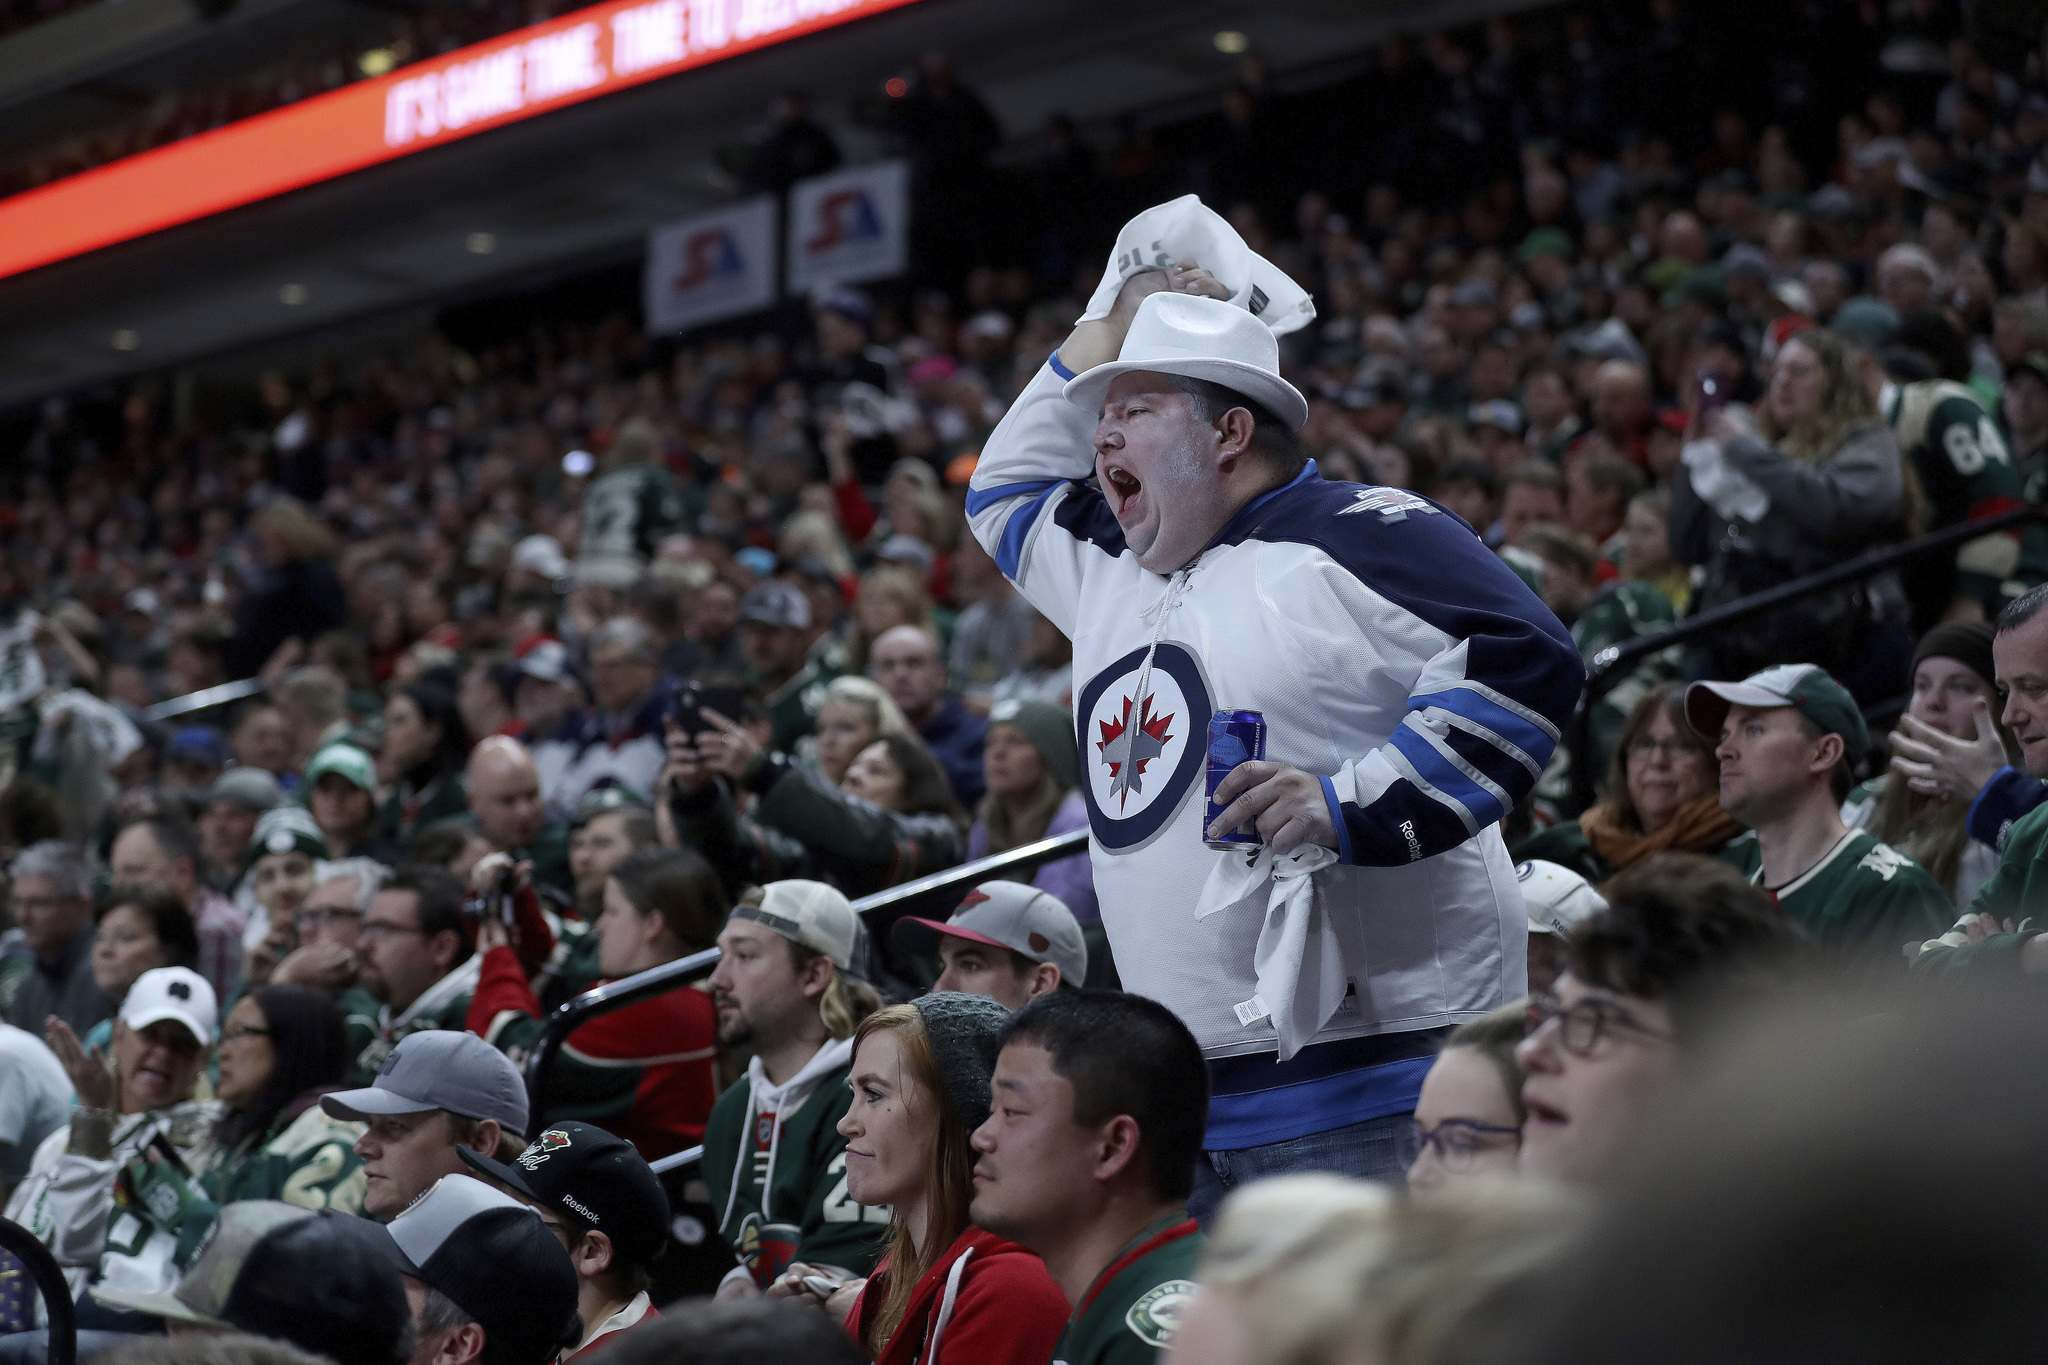 TREVOR HAGAN / WINNIPEG FREE PRESS</p><p>A Winnipeg Jets&#39; fan yells during first period NHL playoff hockey action against the Minnesota Wild at the Xcel Energy Center in St.Paul, Minnesota, Sunday, April 14, 2018.</p>